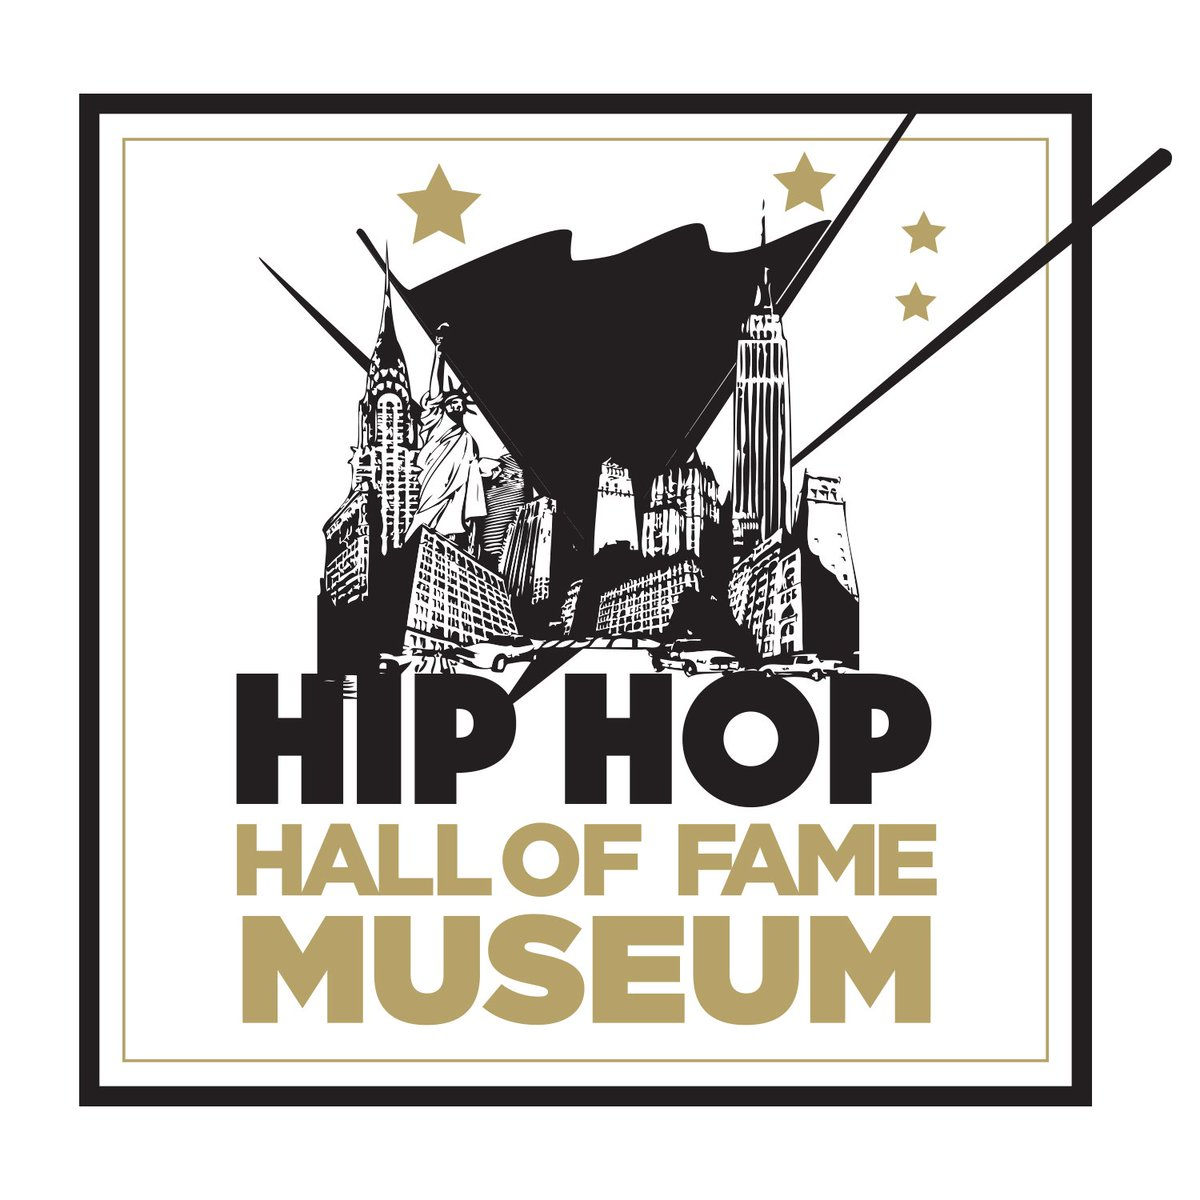 #HappyMemorialDayWeekend! Peace &amp; Blessings From The Official #HipHopHallofFame Family! @HipHopHoF #HaveFun #BeSafe  http:// hiphophof.org  &nbsp;  <br>http://pic.twitter.com/taIVLZqaOL